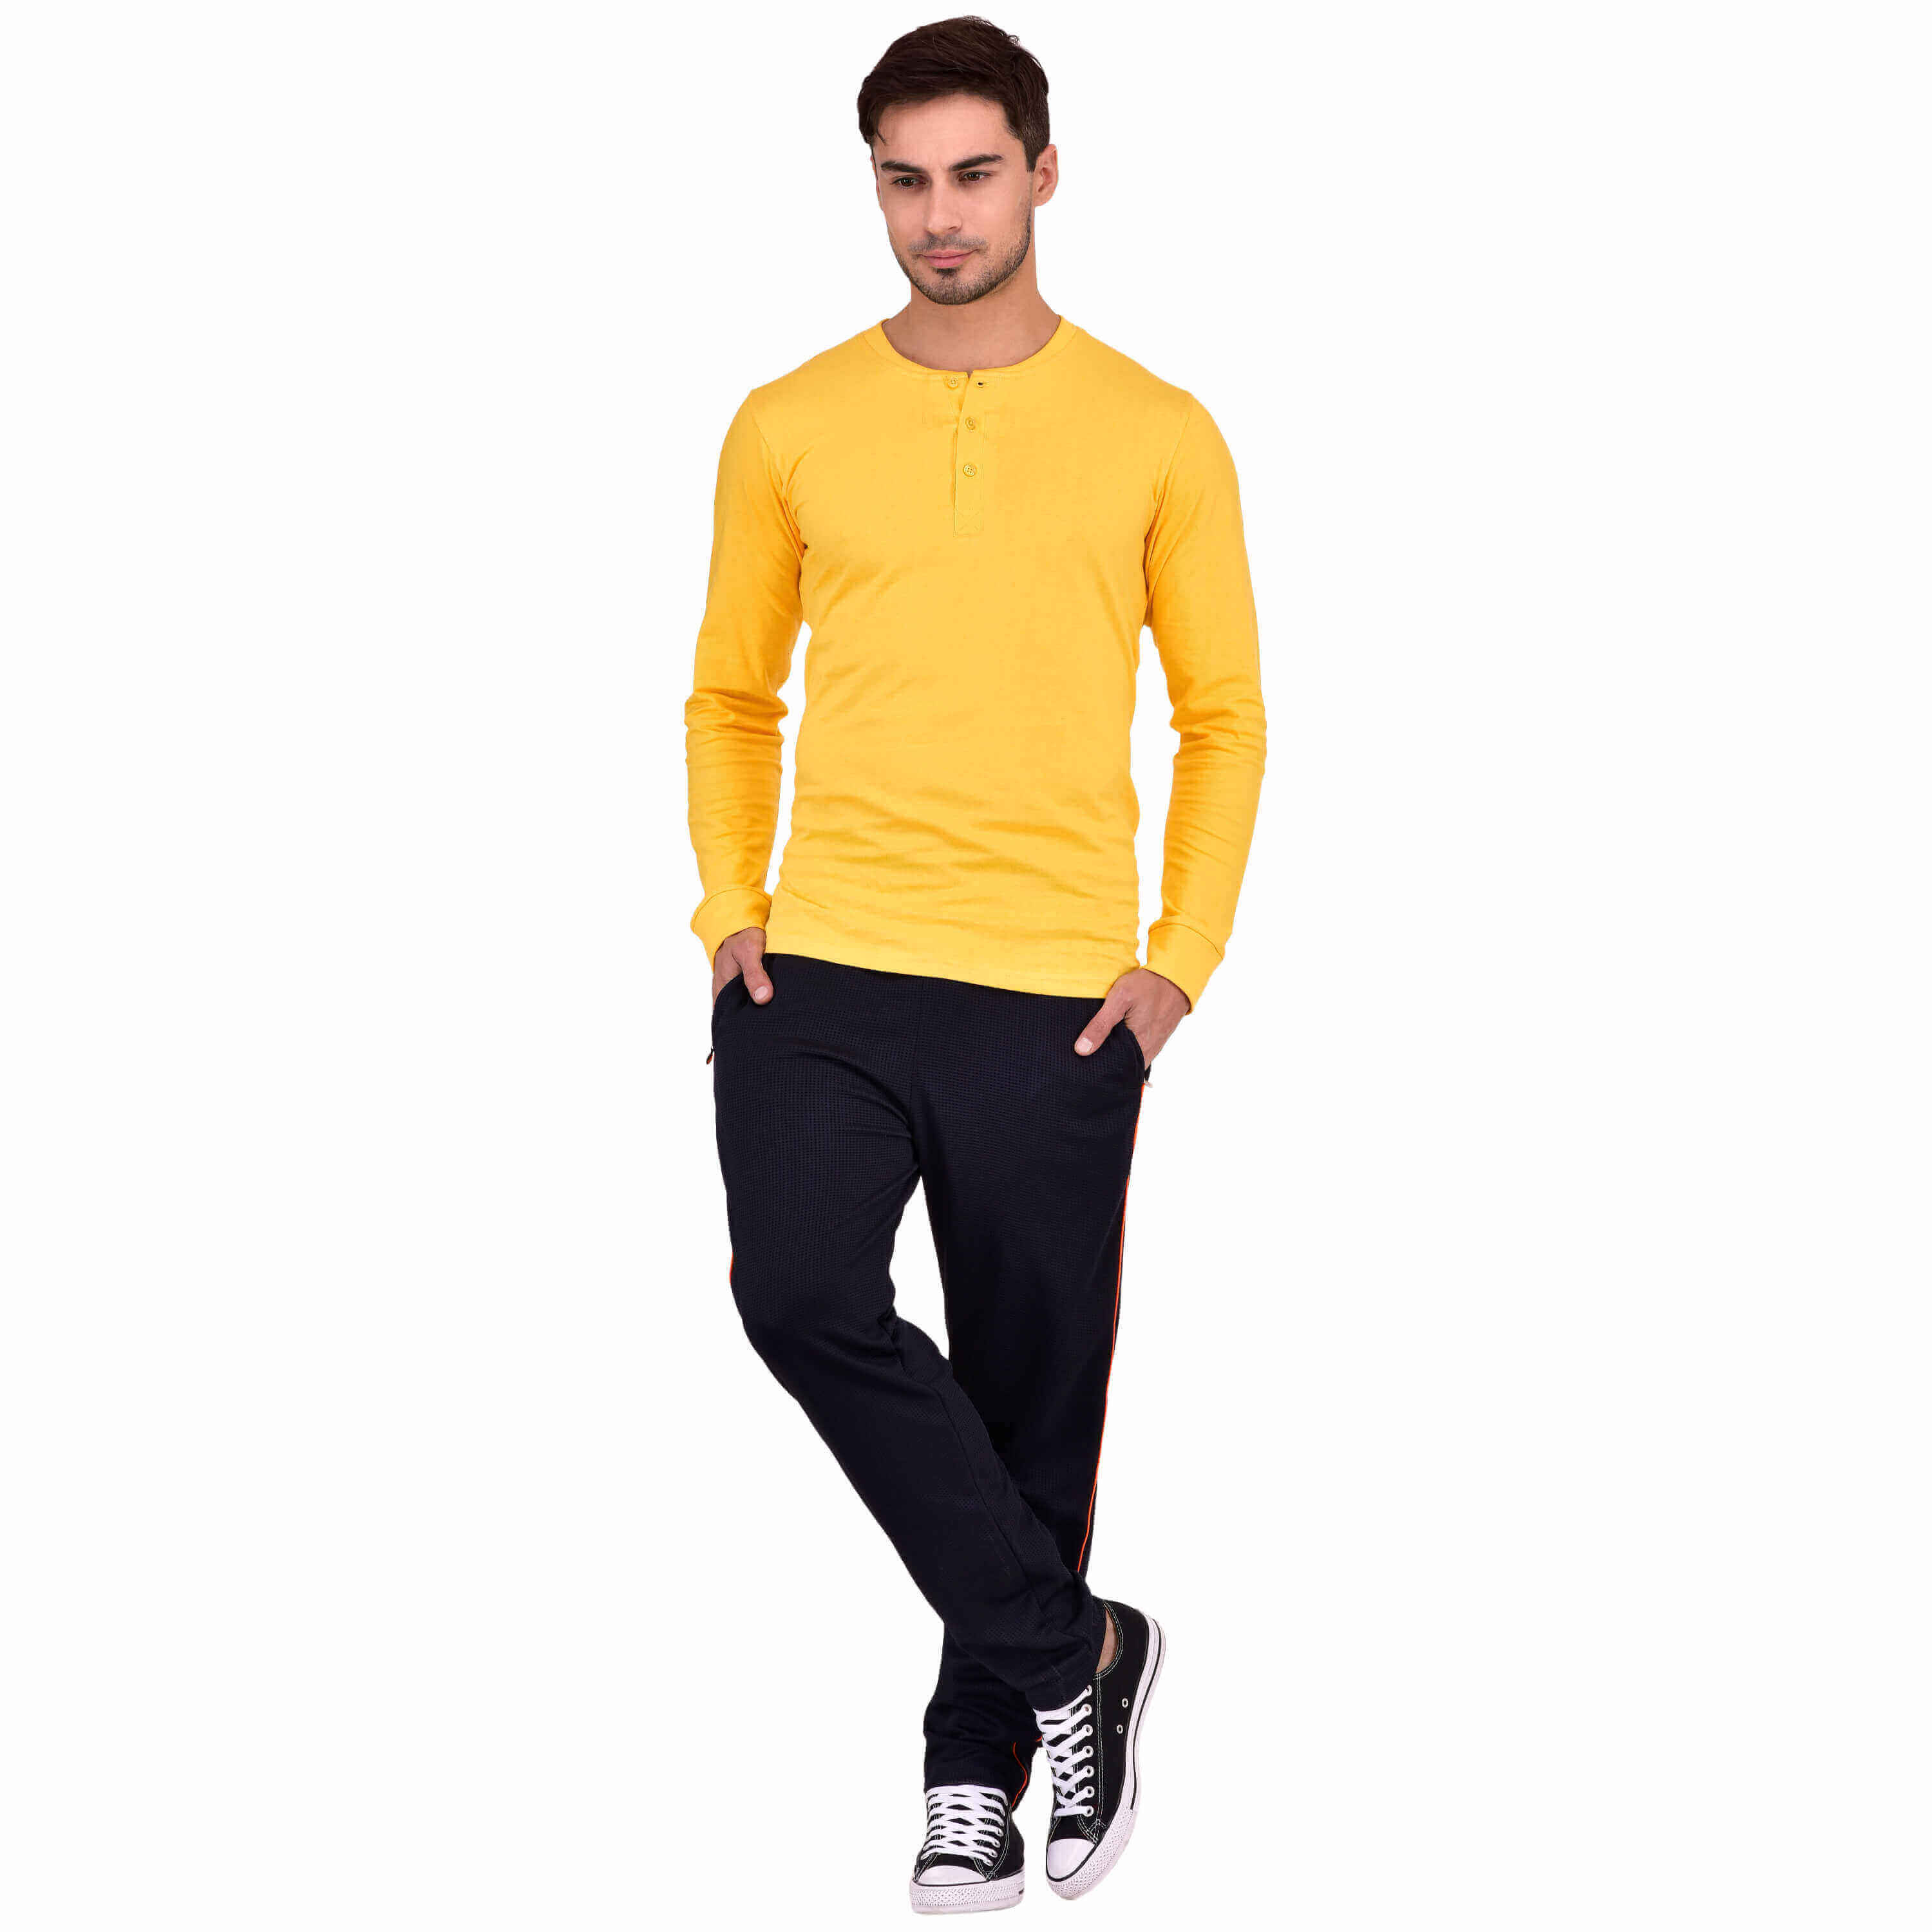 Long T Shirt Manufacturers in Srinagar